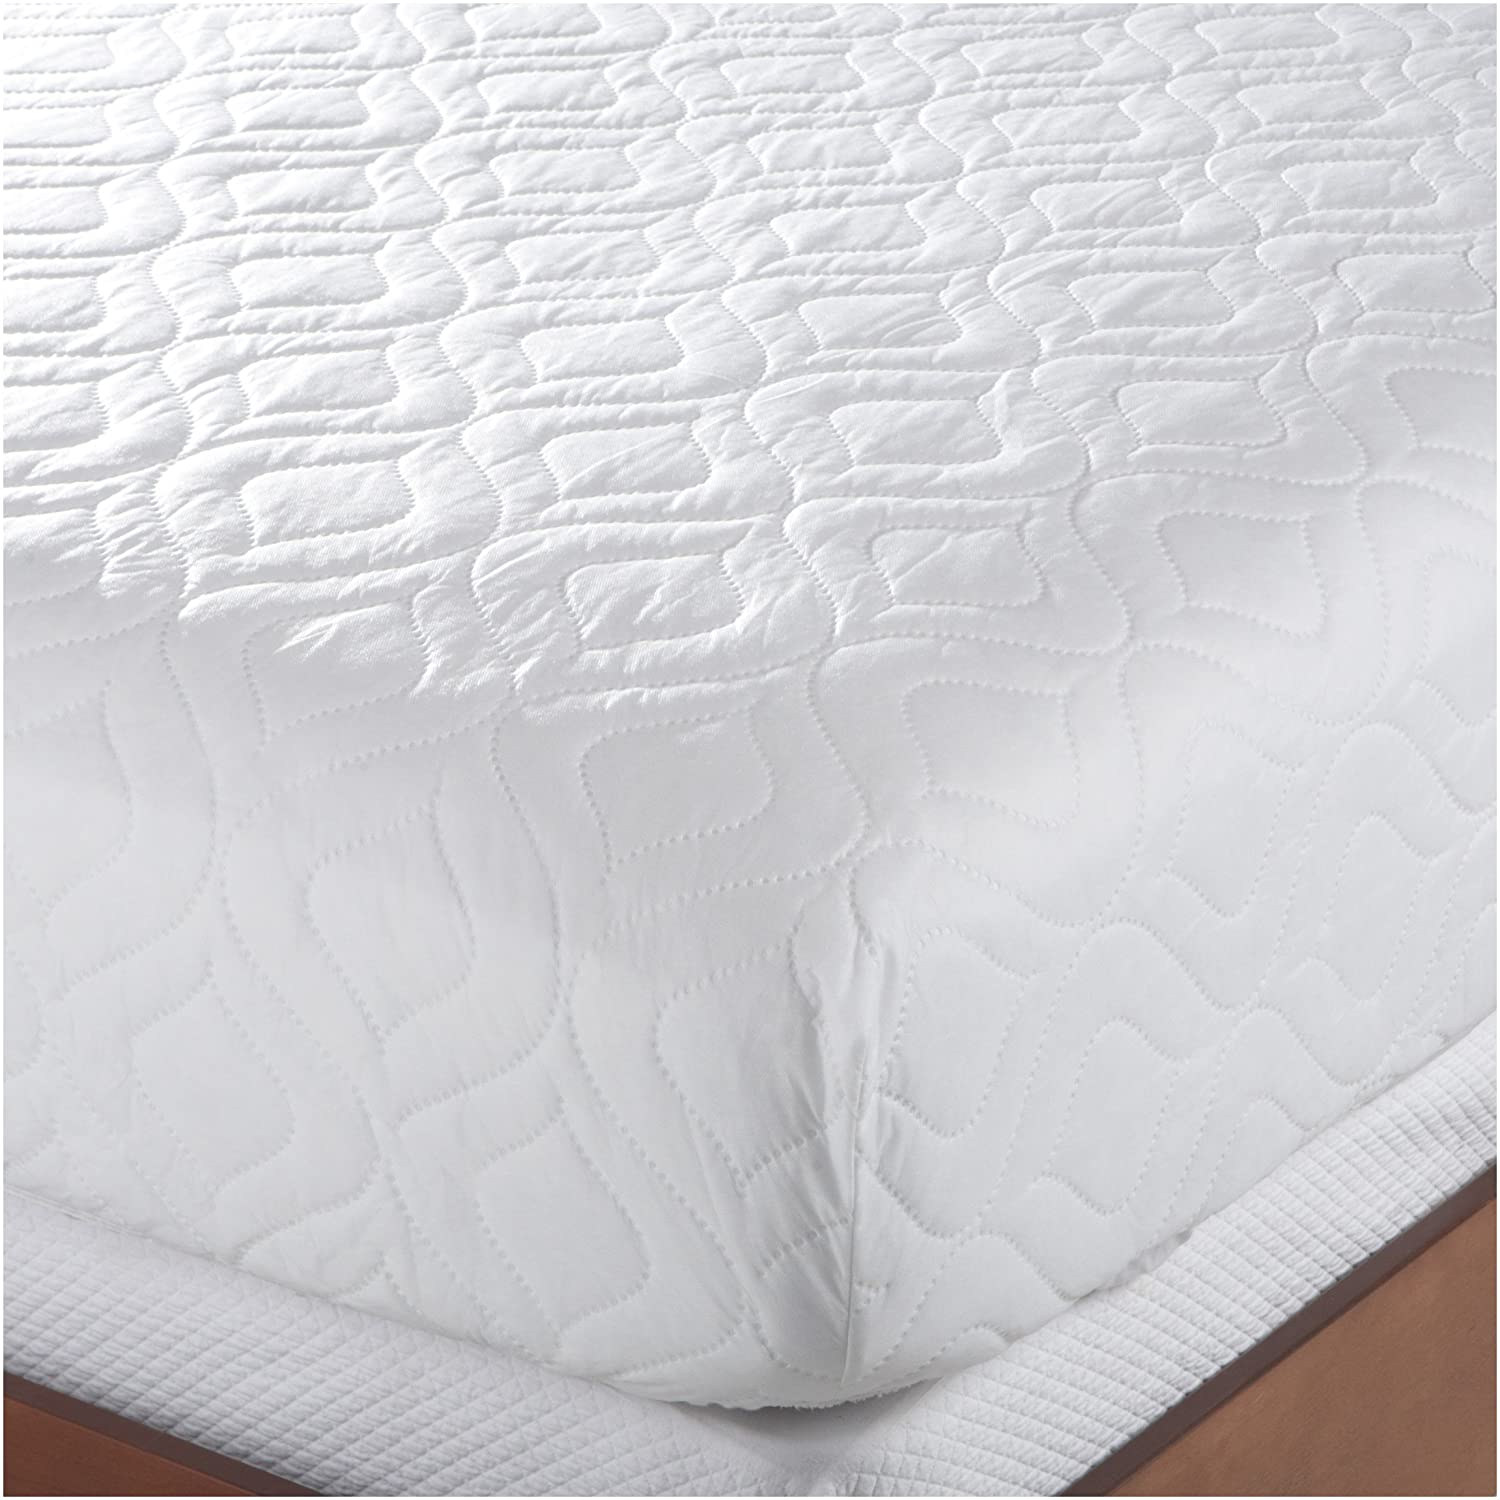 top foam sleepinnovations product mattress innovations sleep fiber pillow instant next topper and ipt main memory